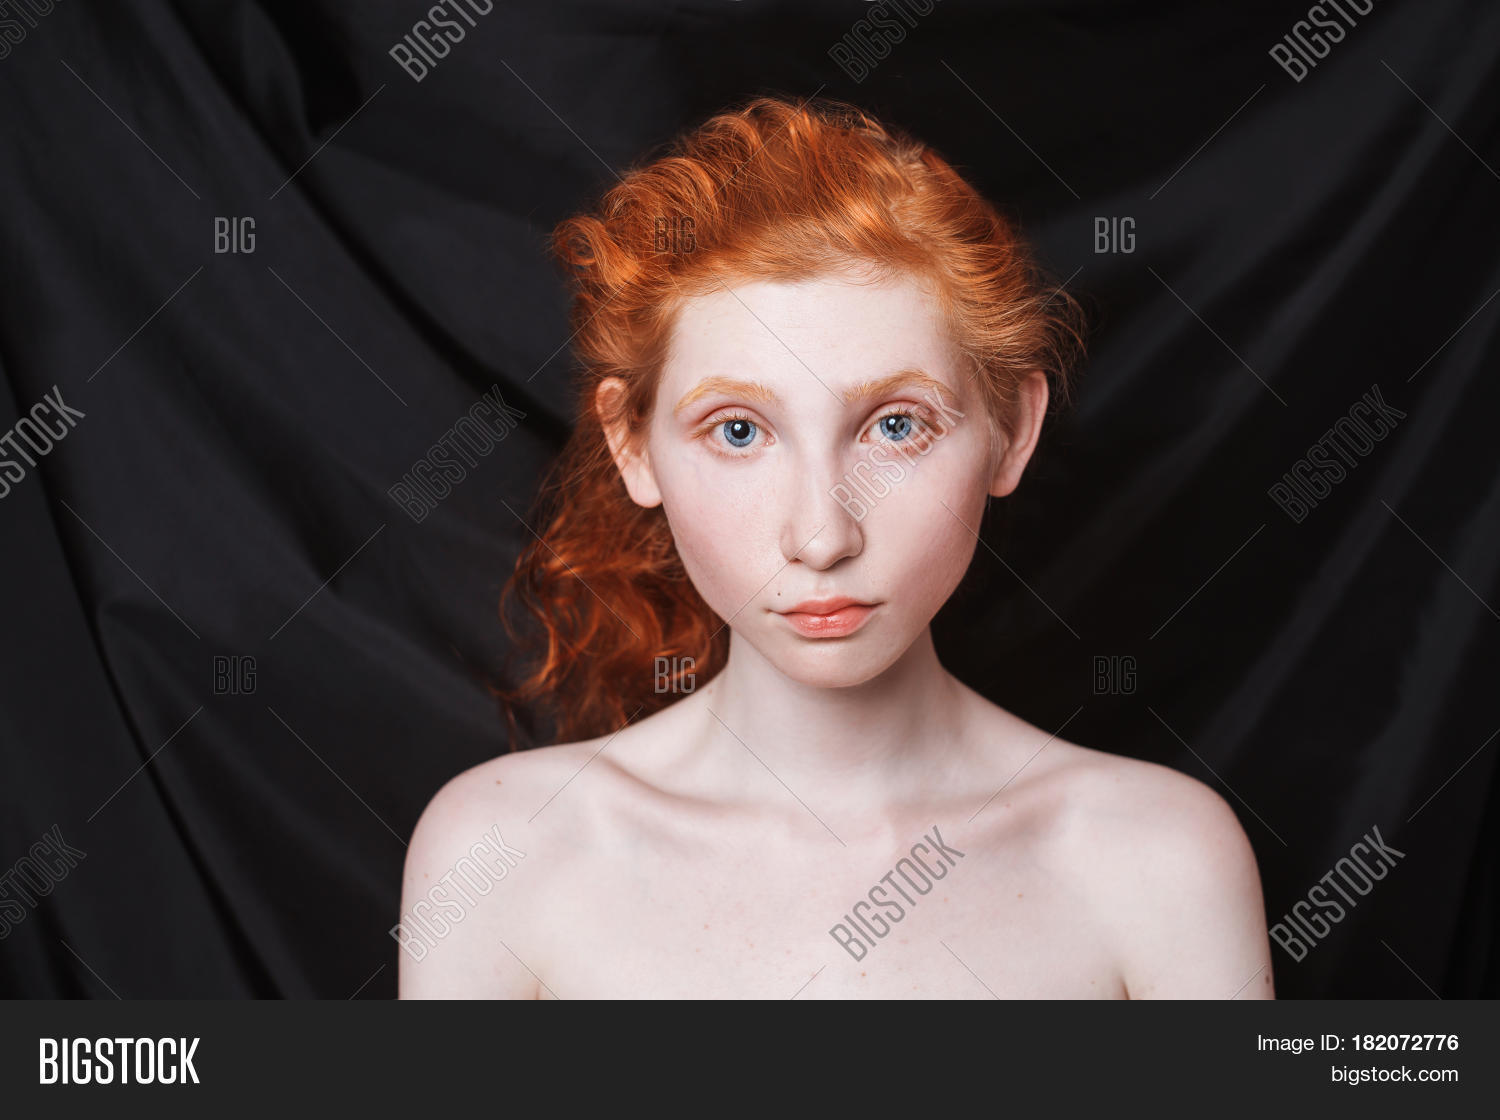 Woman Long Curly Red Image Photo Free Trial Bigstock